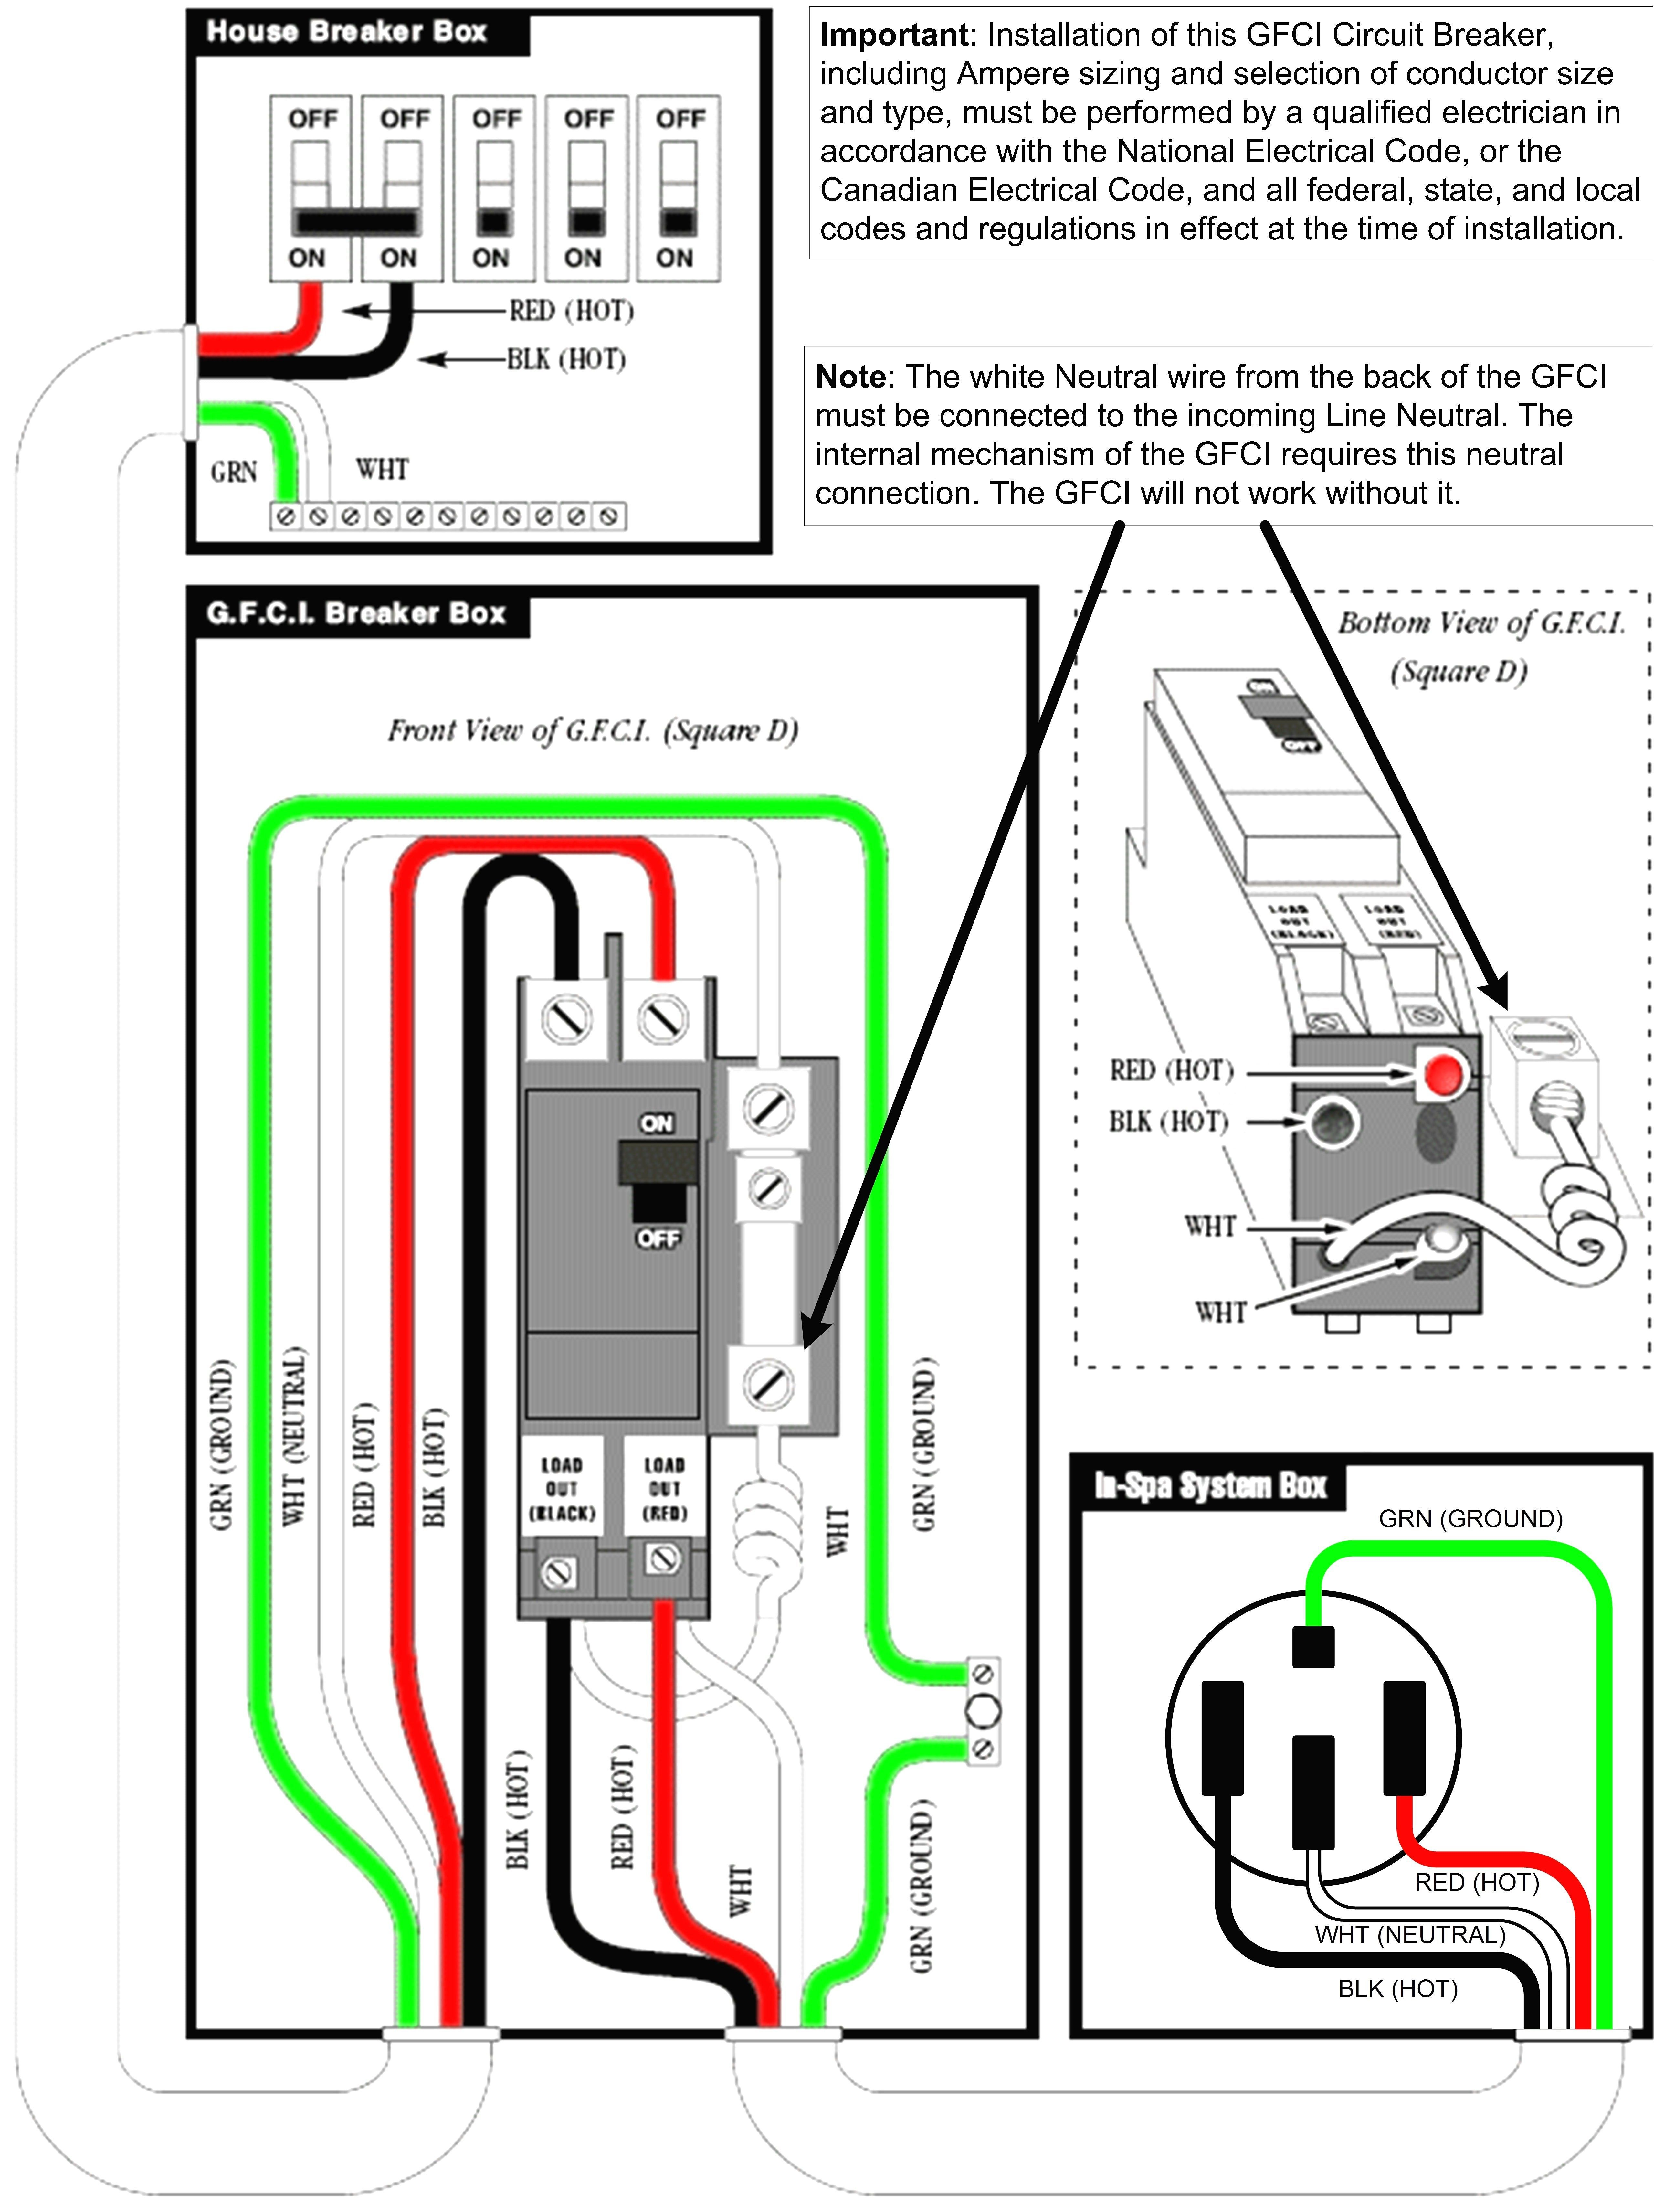 A Hot Tub Motor Wiring Electrical Panel Wiring Outlet Wiring Electrical Circuit Diagram